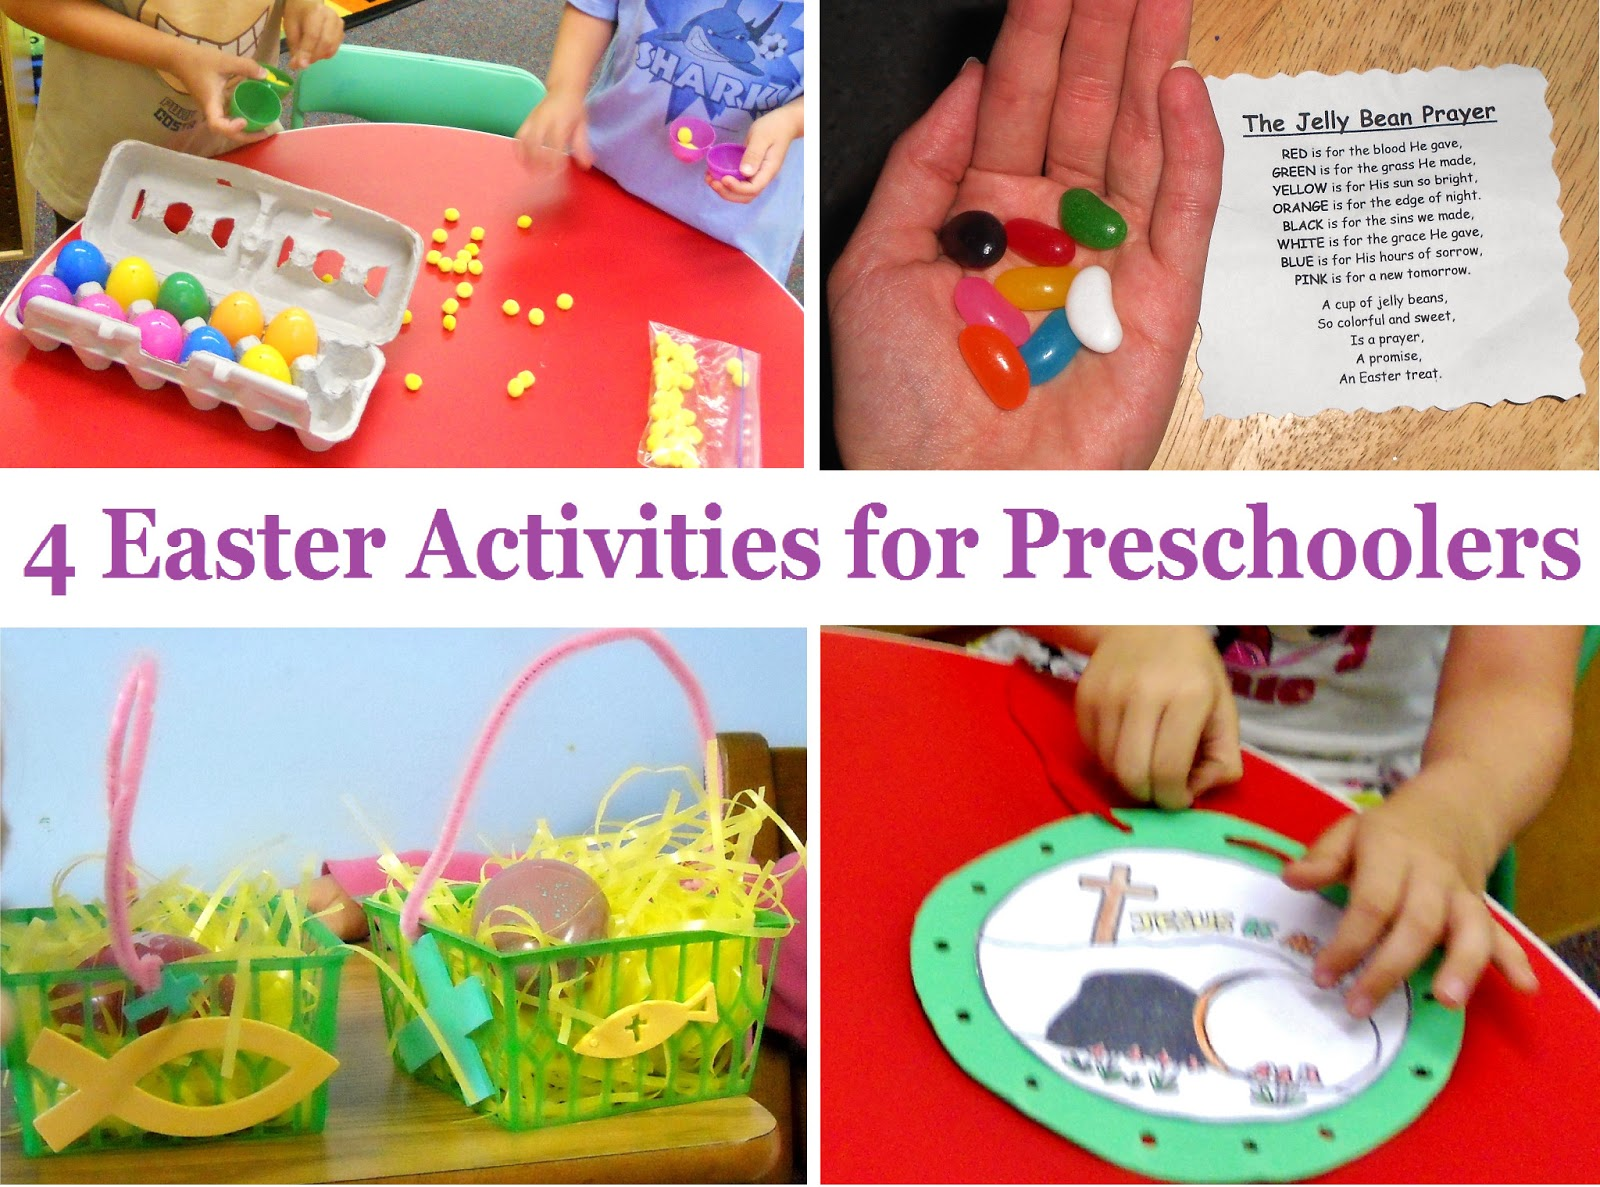 Princesses, Pies, & Preschool Pizzazz: 4 More Easter Activities ...